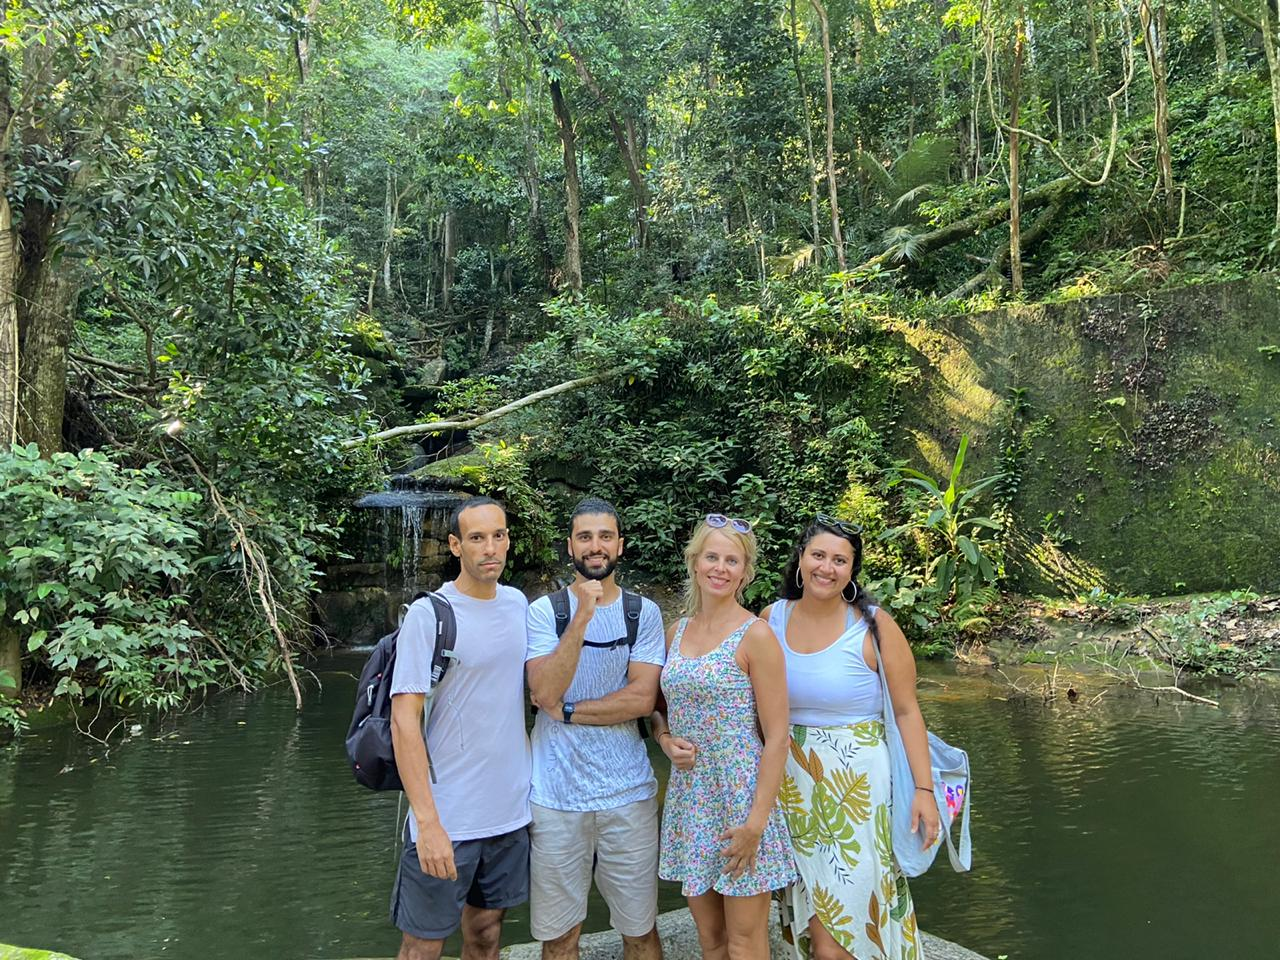 Students in front of waterfall in Parque Lage